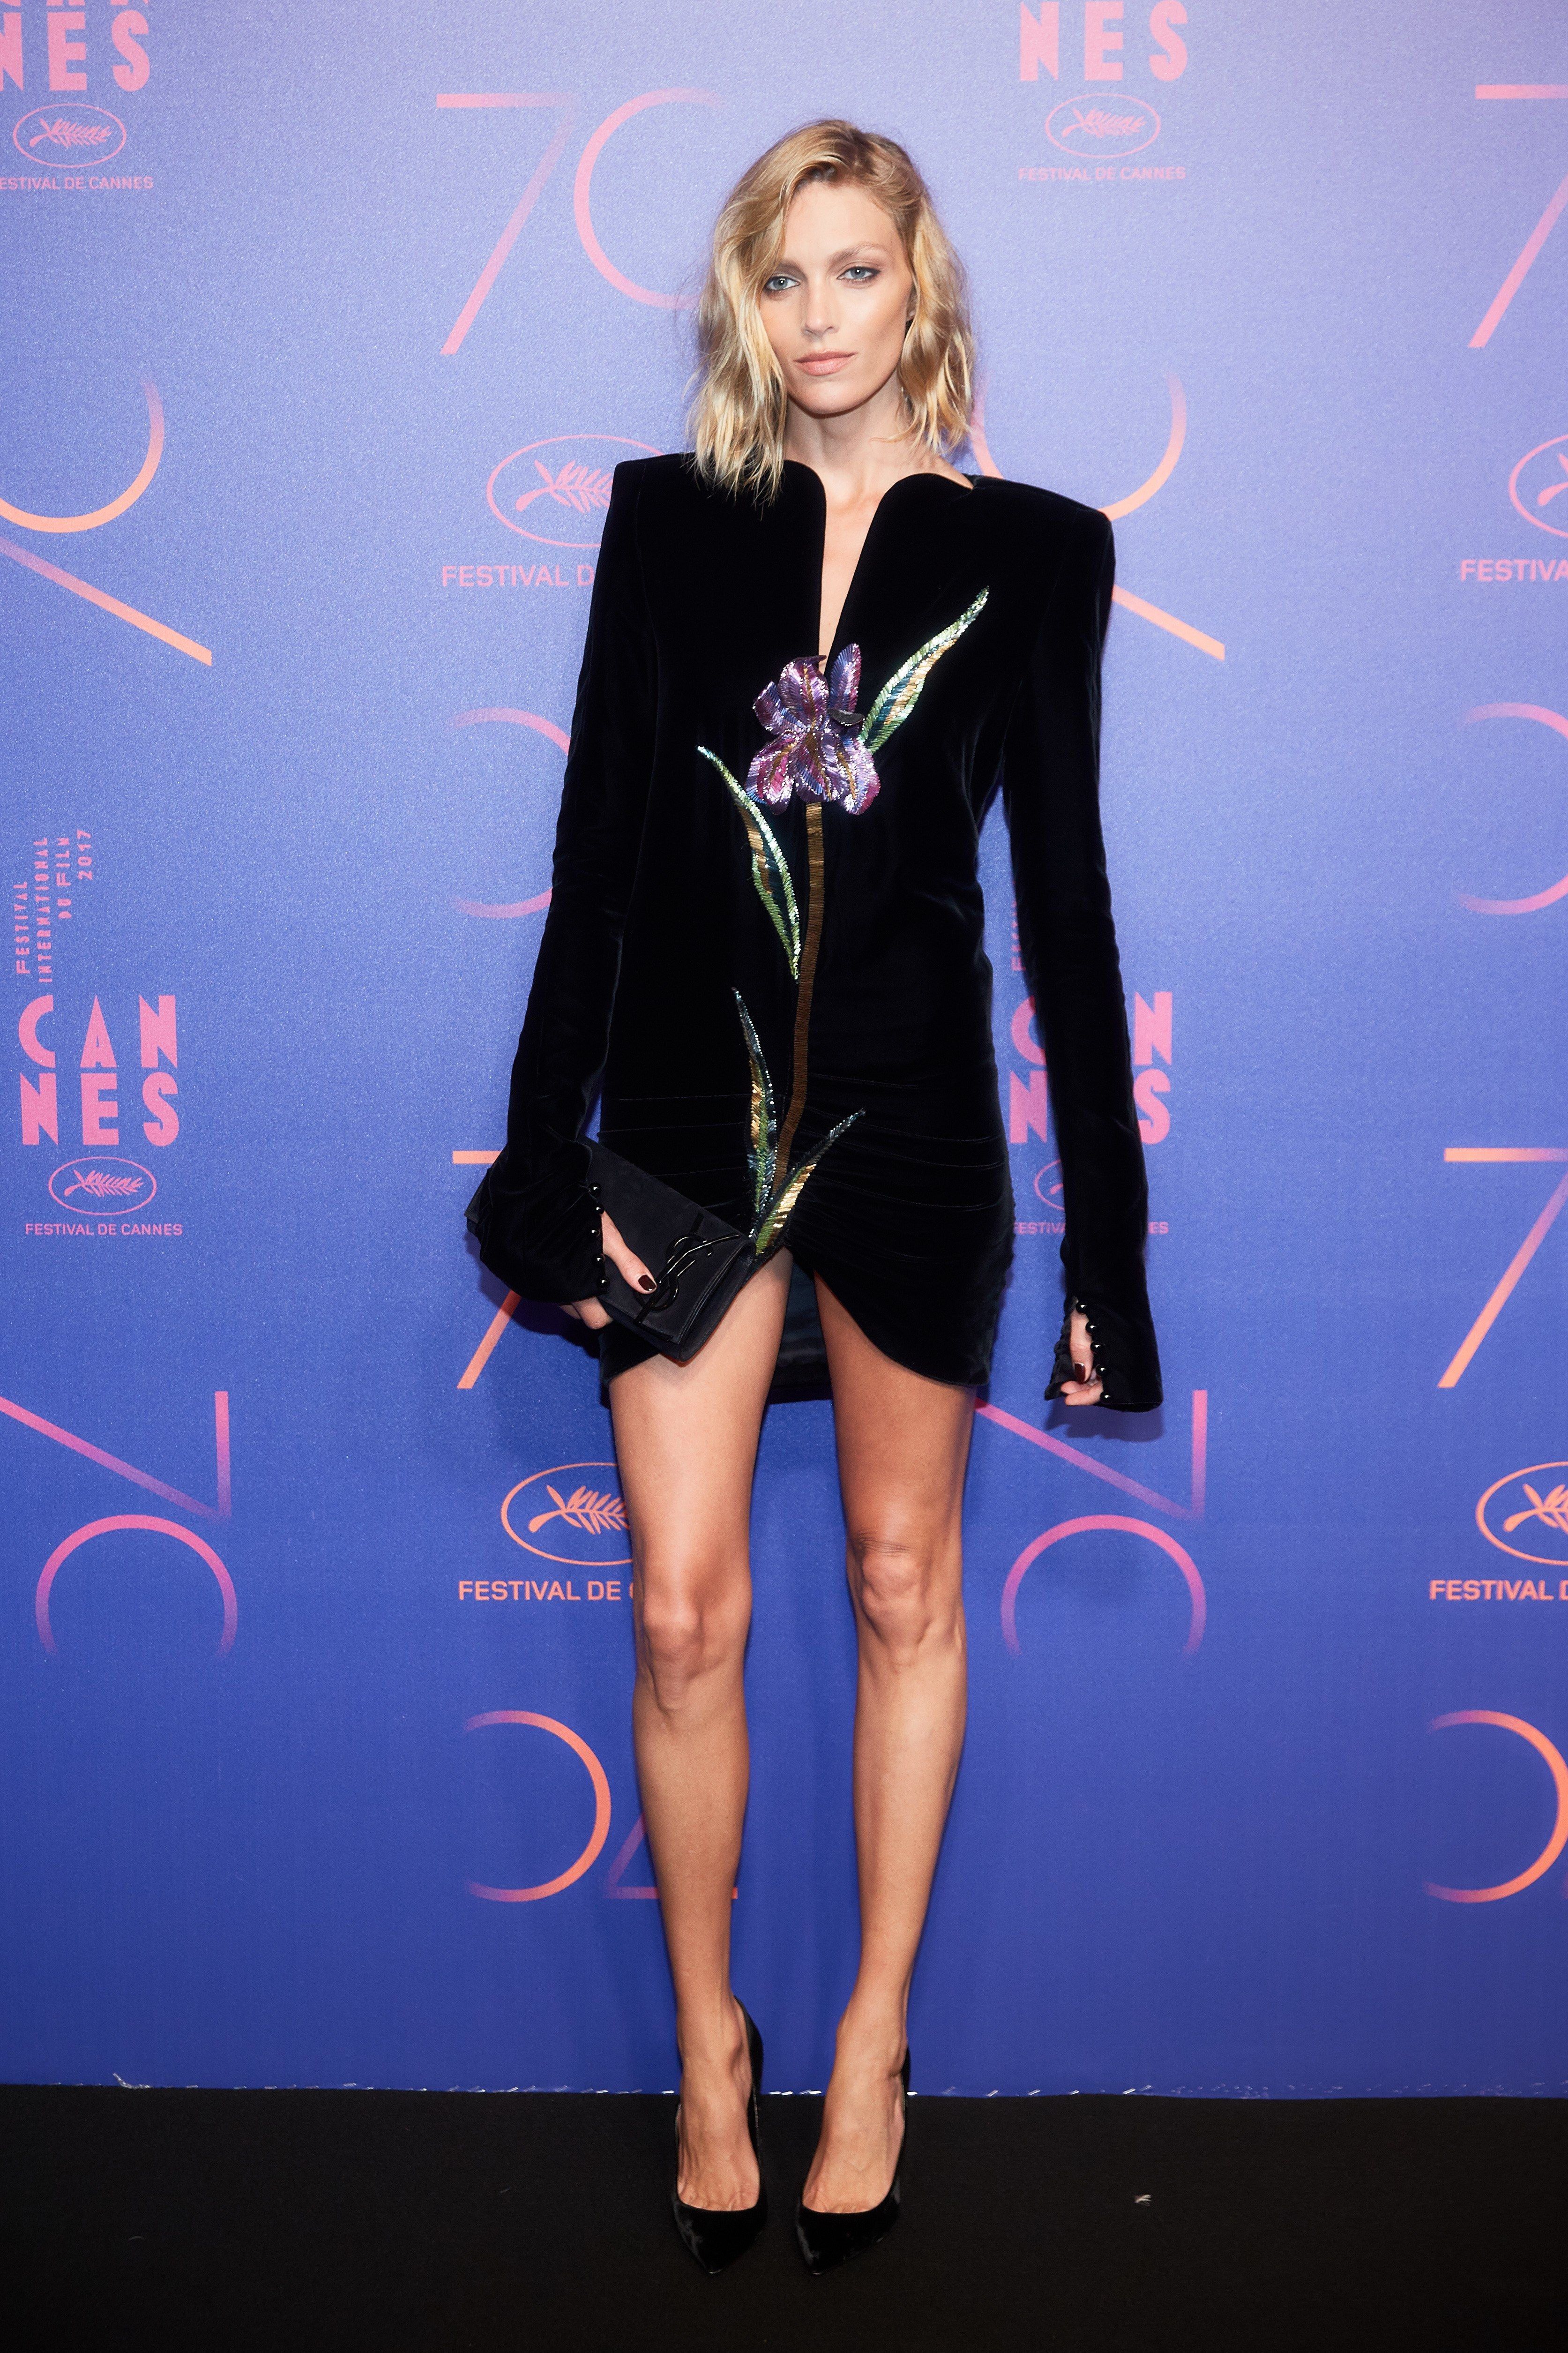 , Bella Hadid, Jessica Chastain, and Elle Fanning Lead the Charge at the 2017 Cannes Film Festival, Anja Rubik Blog, Anja Rubik Blog